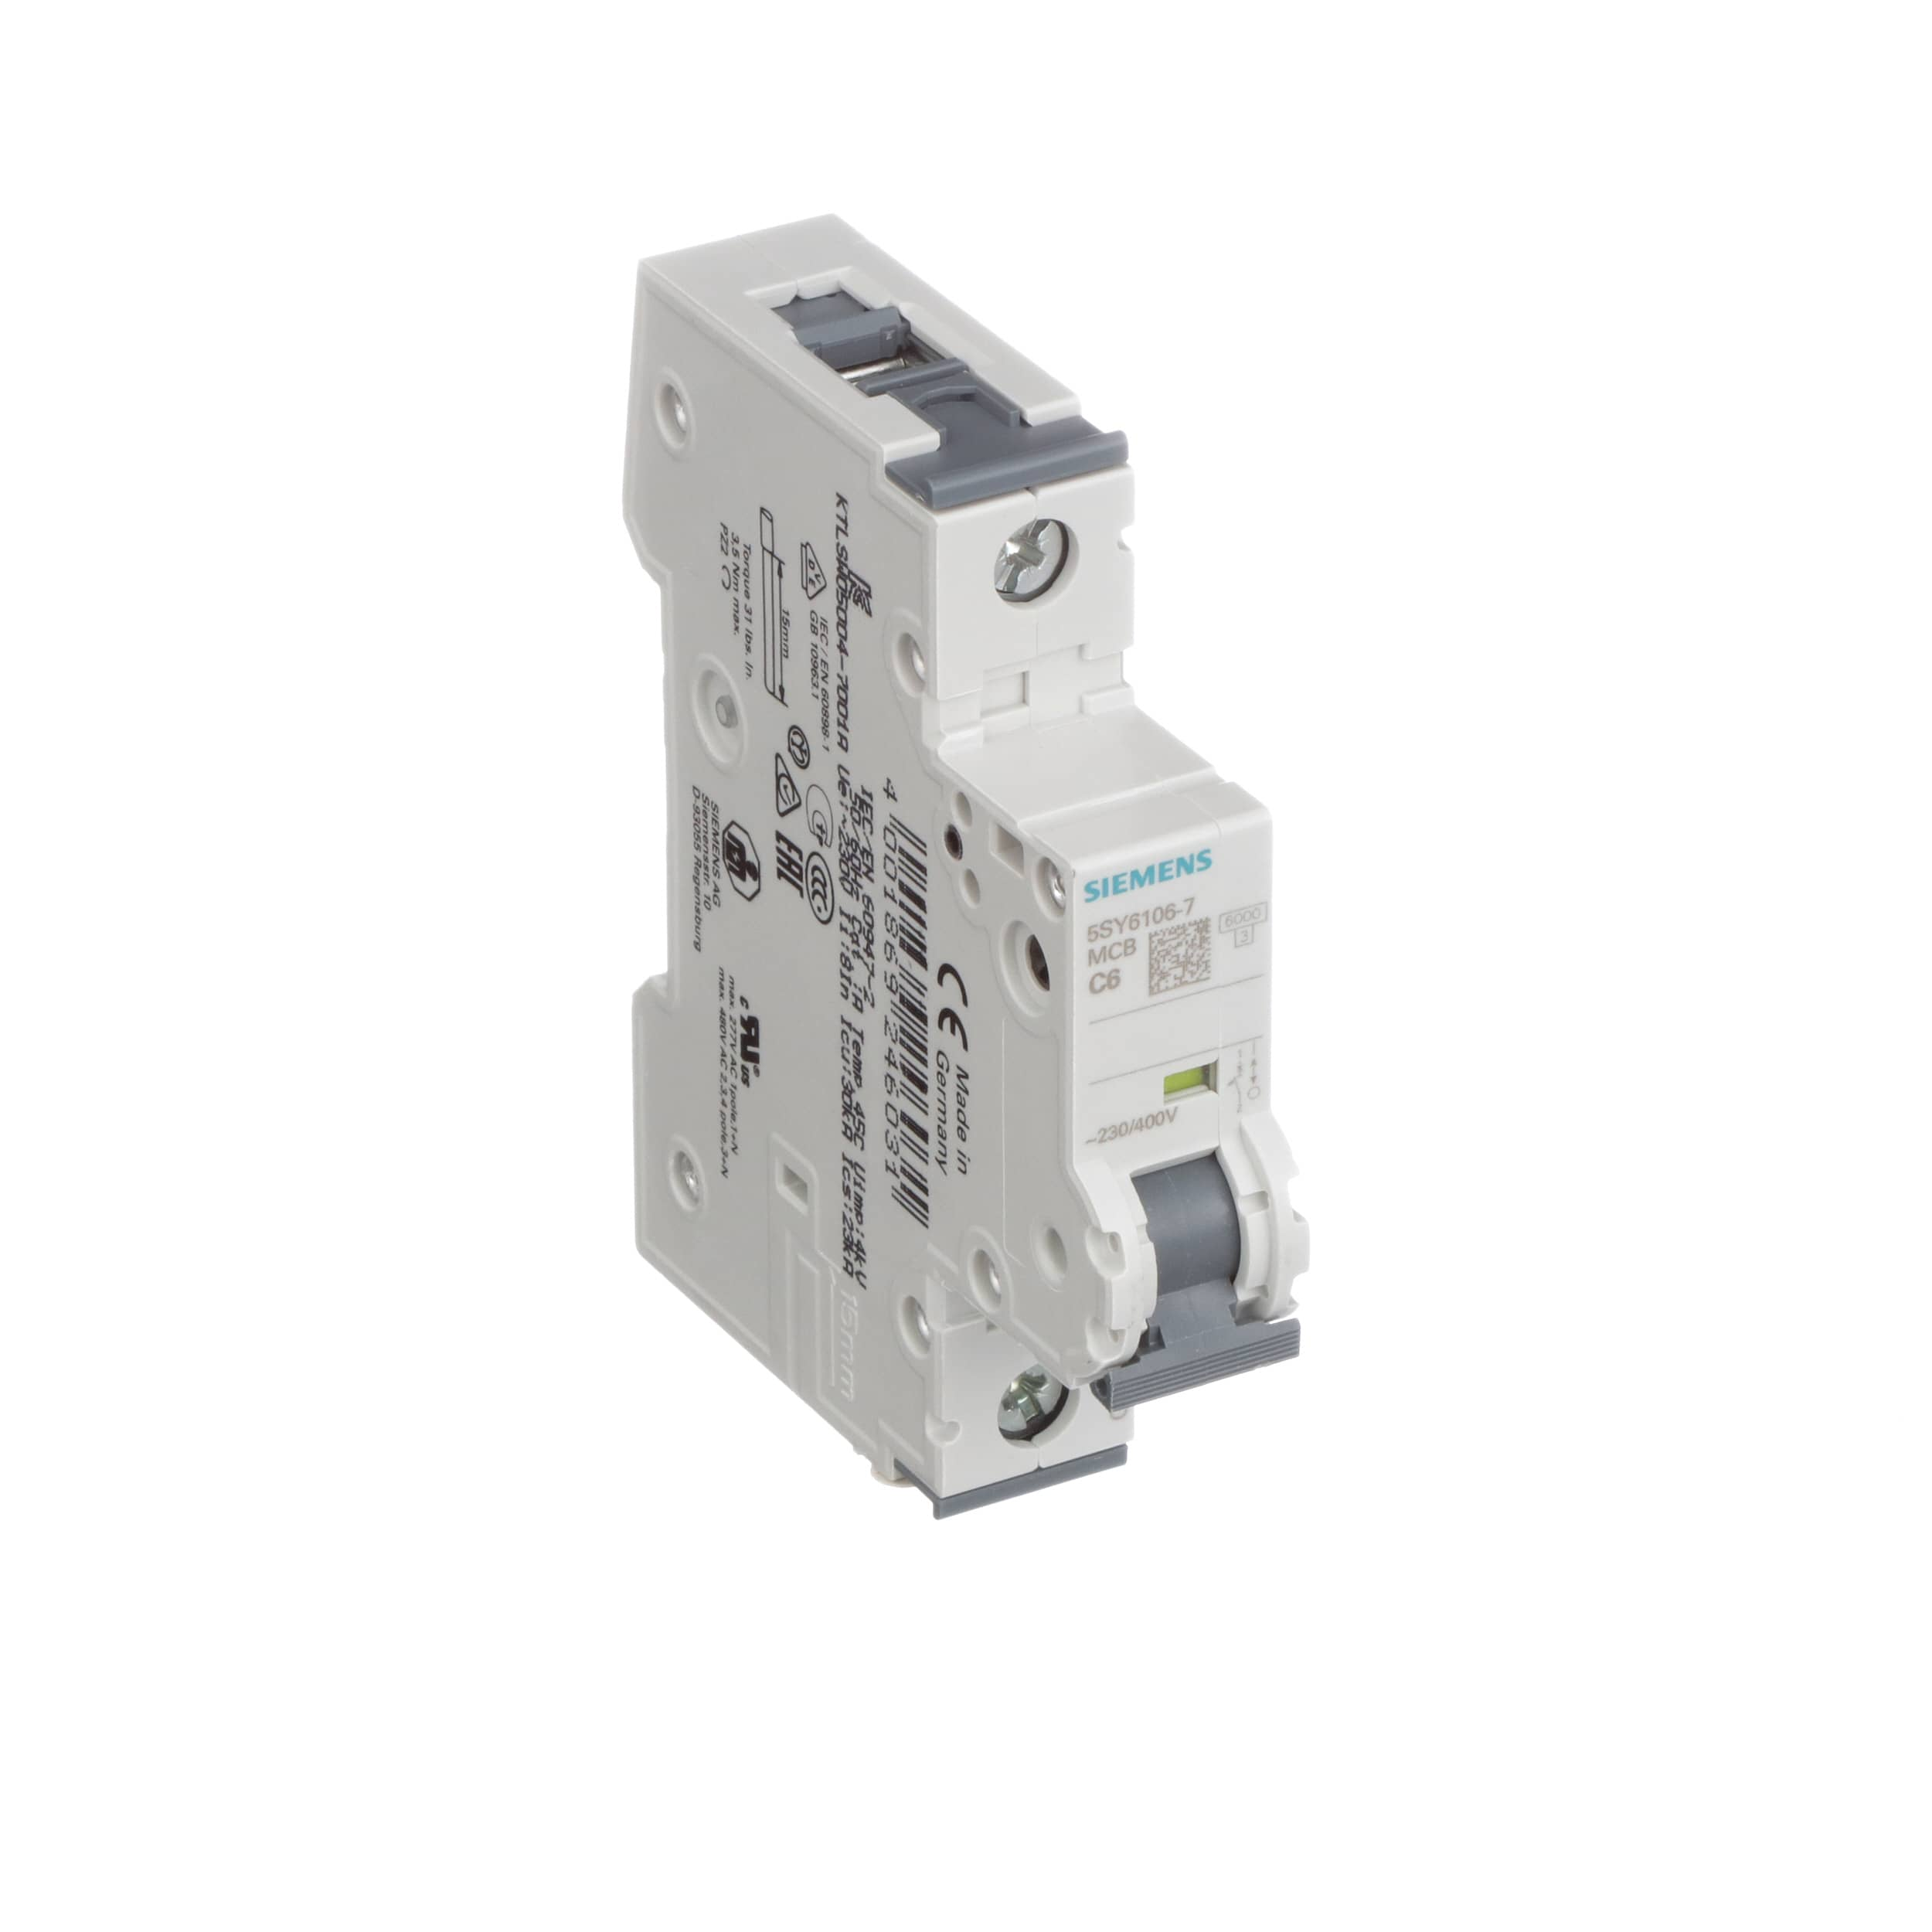 Siemens 5sy61067 Supplementary Protector 400v 6ka 1pole C 6a How To Troubleshoot Circuit Breakers Mini Breaker 2 Allied Electronics Automation